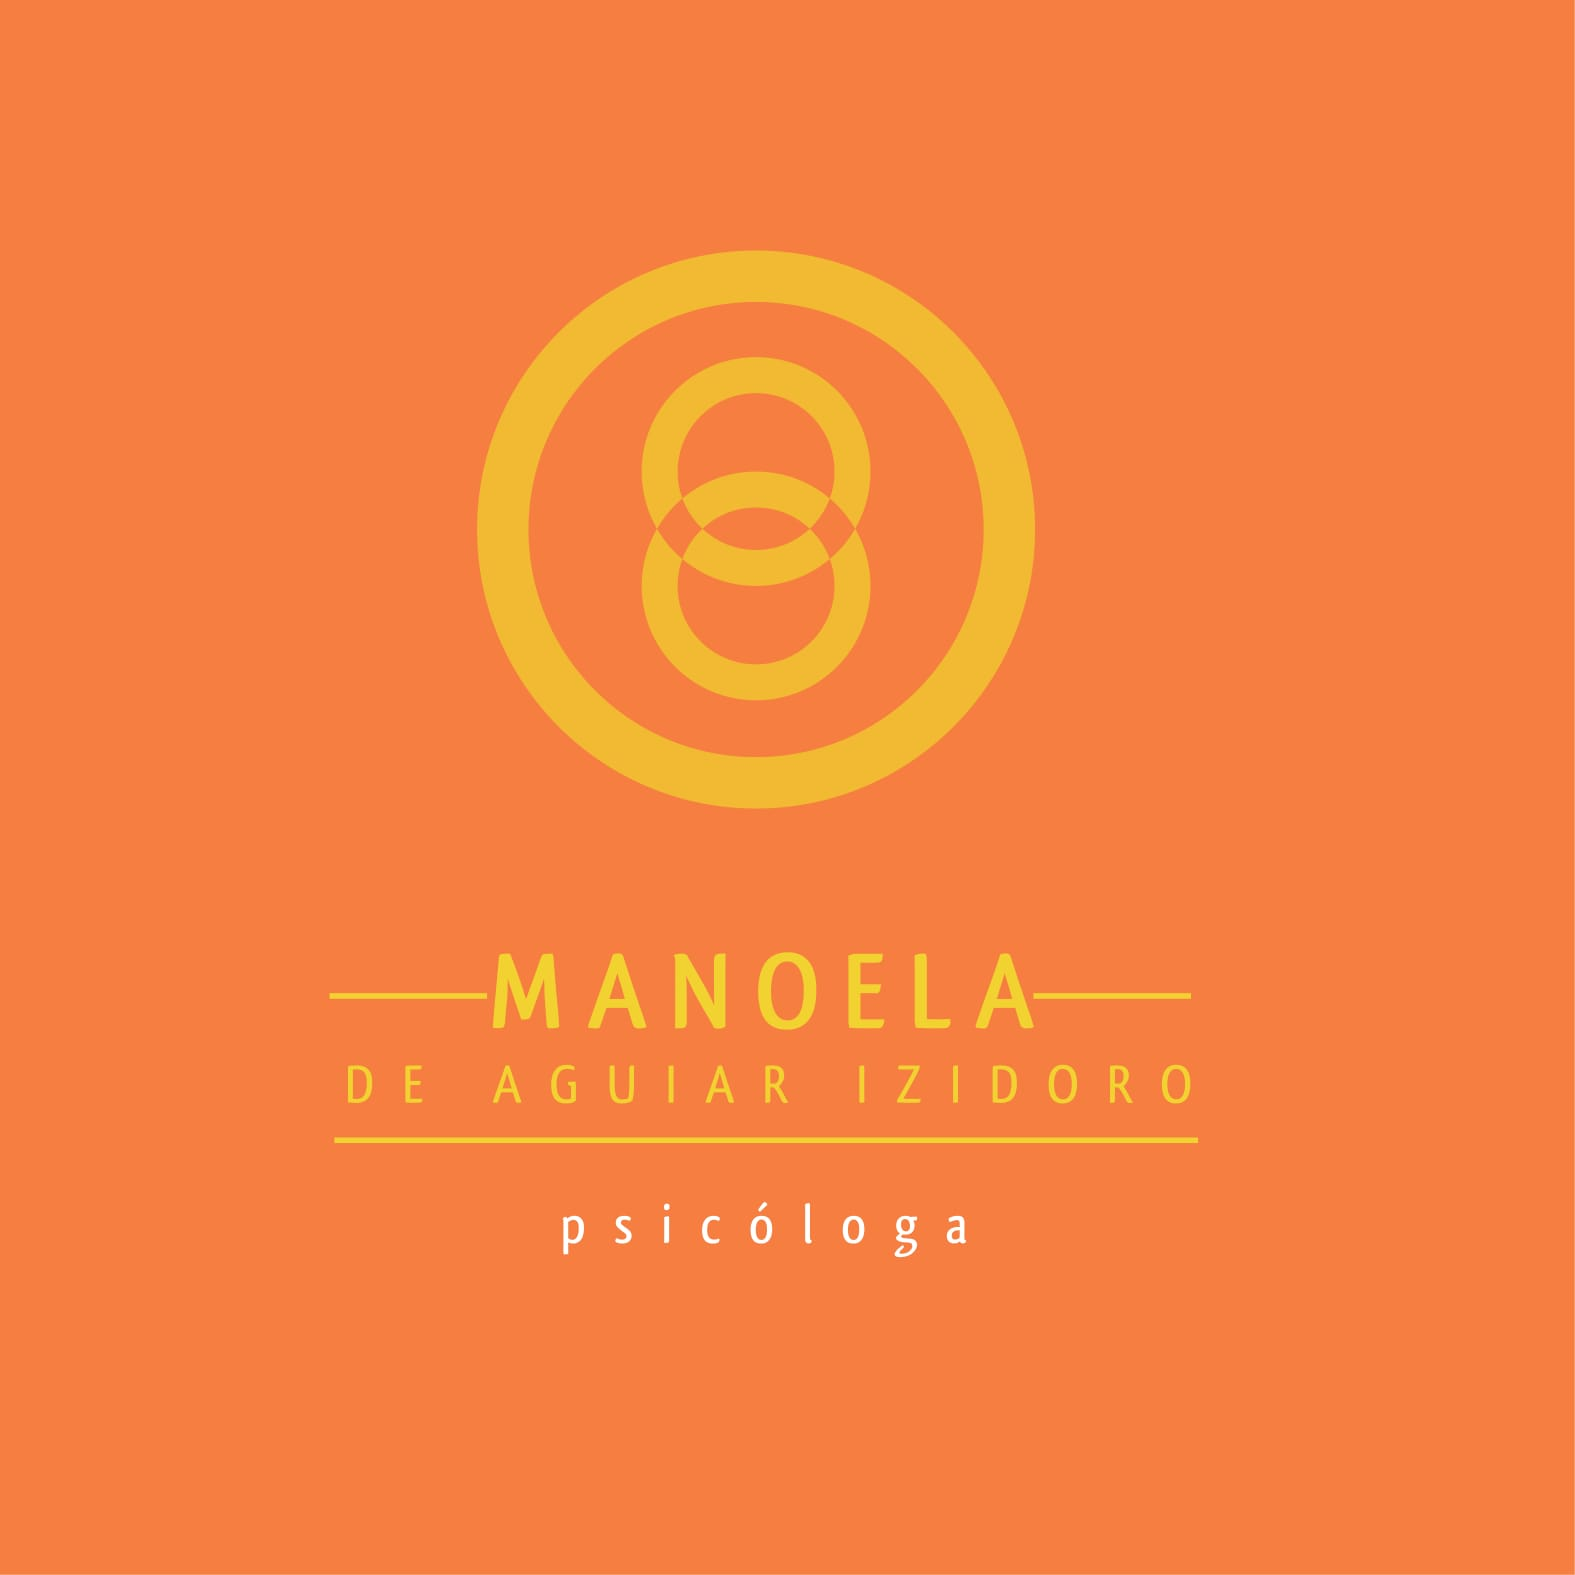 Manoela logotipos 1